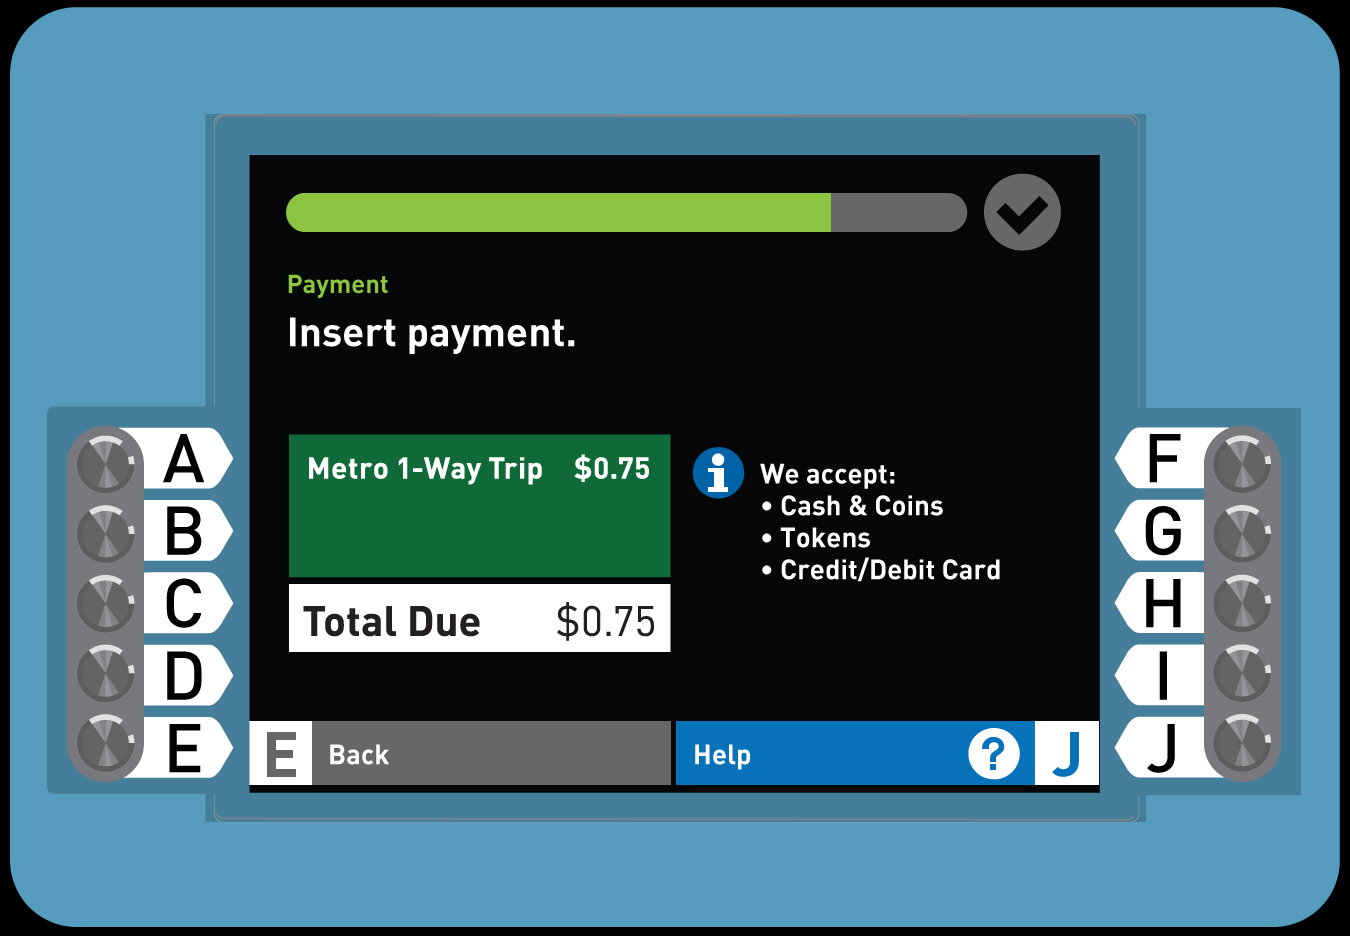 6. How to Load Senior TAP card with 1-Way Fare